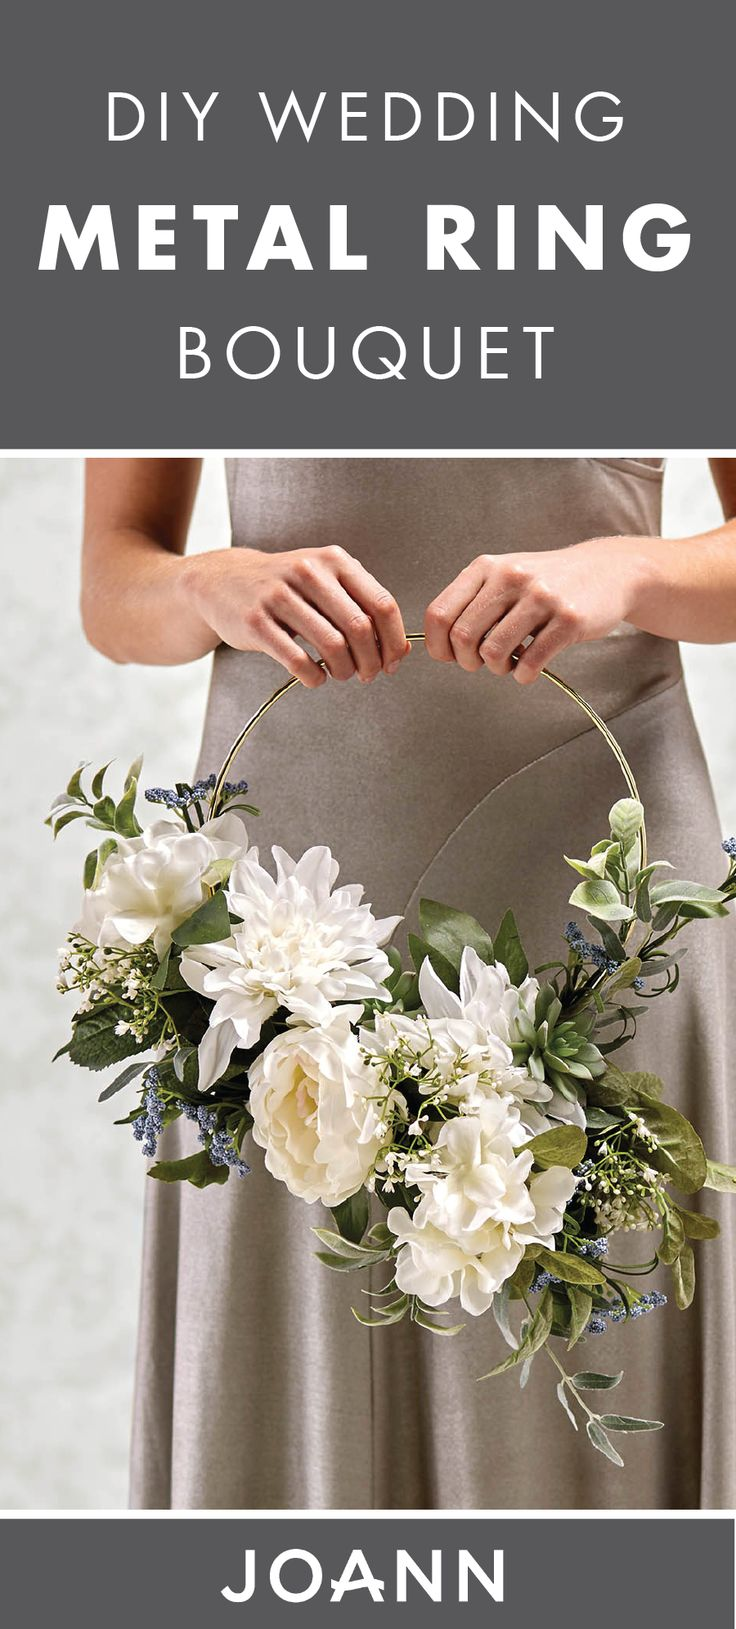 Spring flowers are blossoming all around your garden. This season, capture the outdoors for your bridesmaid's bouquets with this DIY Wedding Metal Ring Bouquet  from JOANN. Whether you're looking to make your own DIY wreaths or floral arrangements, this craft is sure to bring you that modern feel.